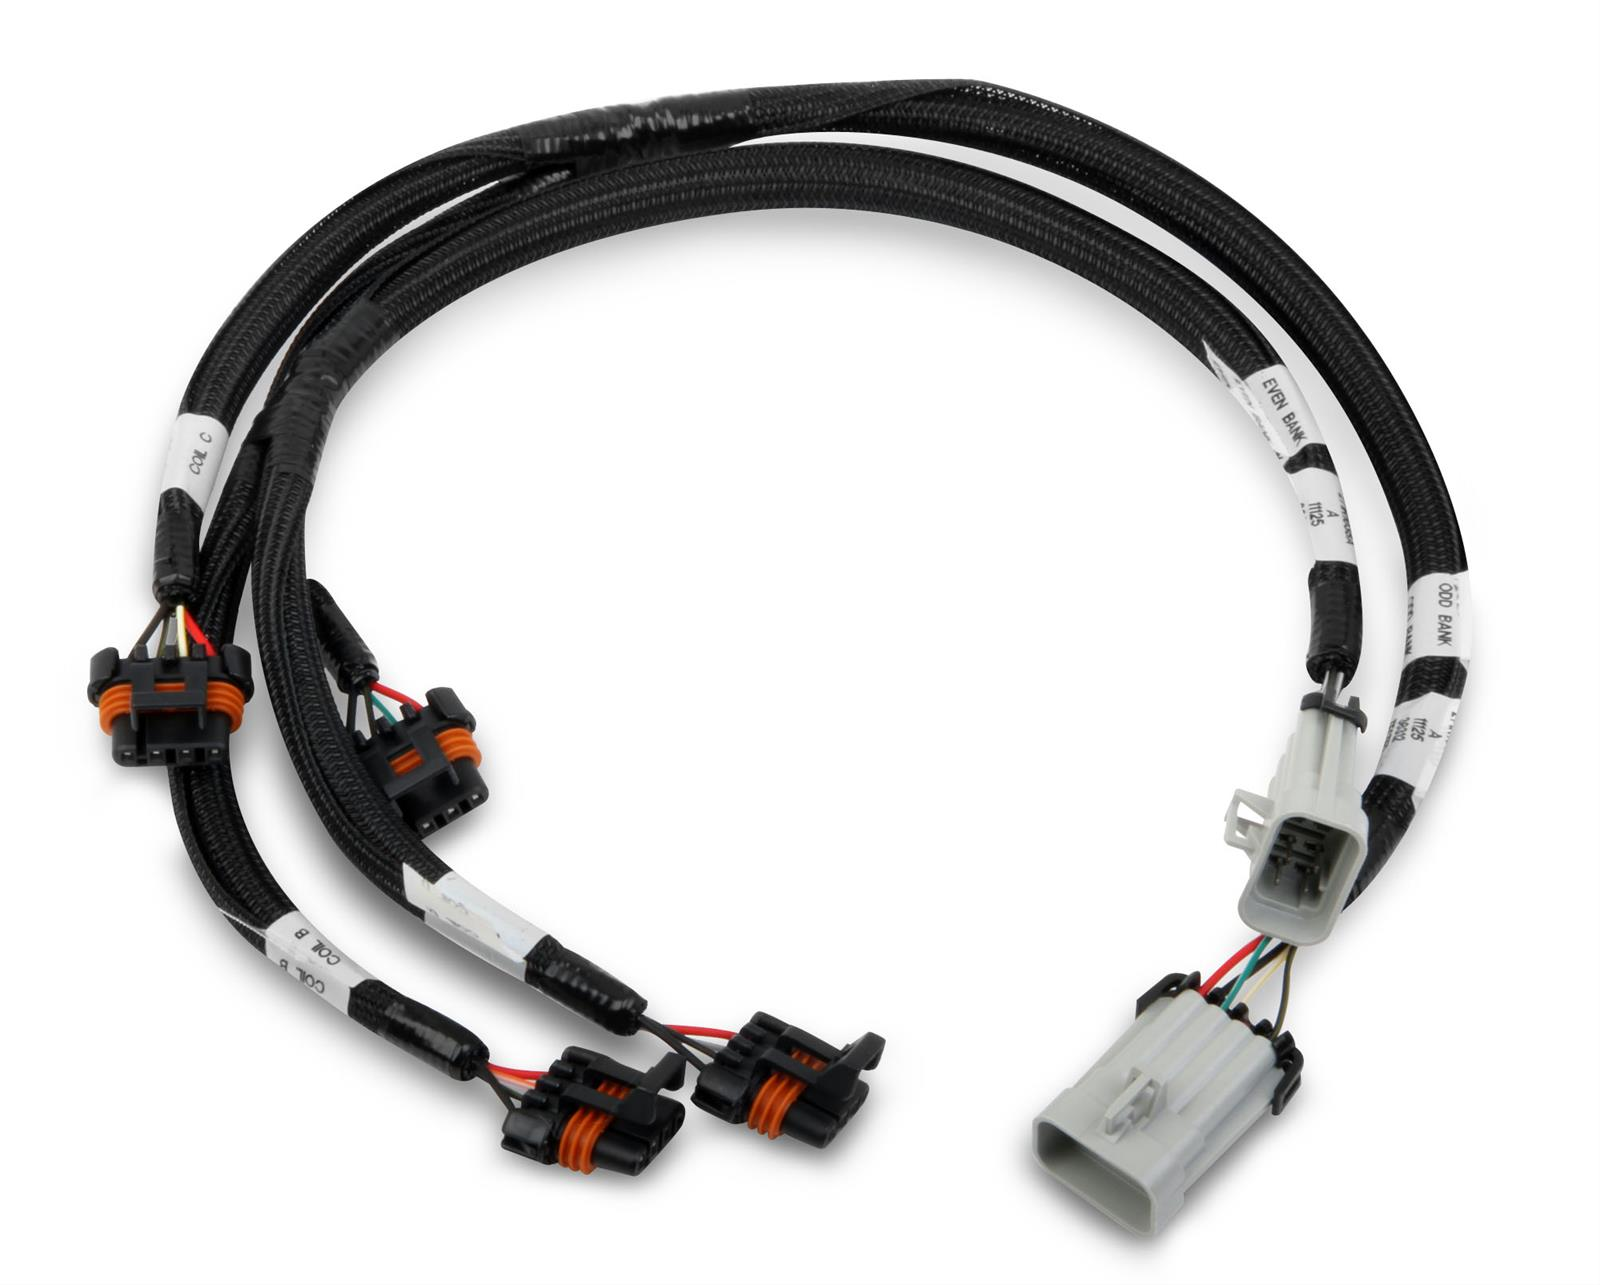 hly 558 309_xl holley efi systems wiring harnesses 558 309 free shipping on summit racing wiring harness at soozxer.org